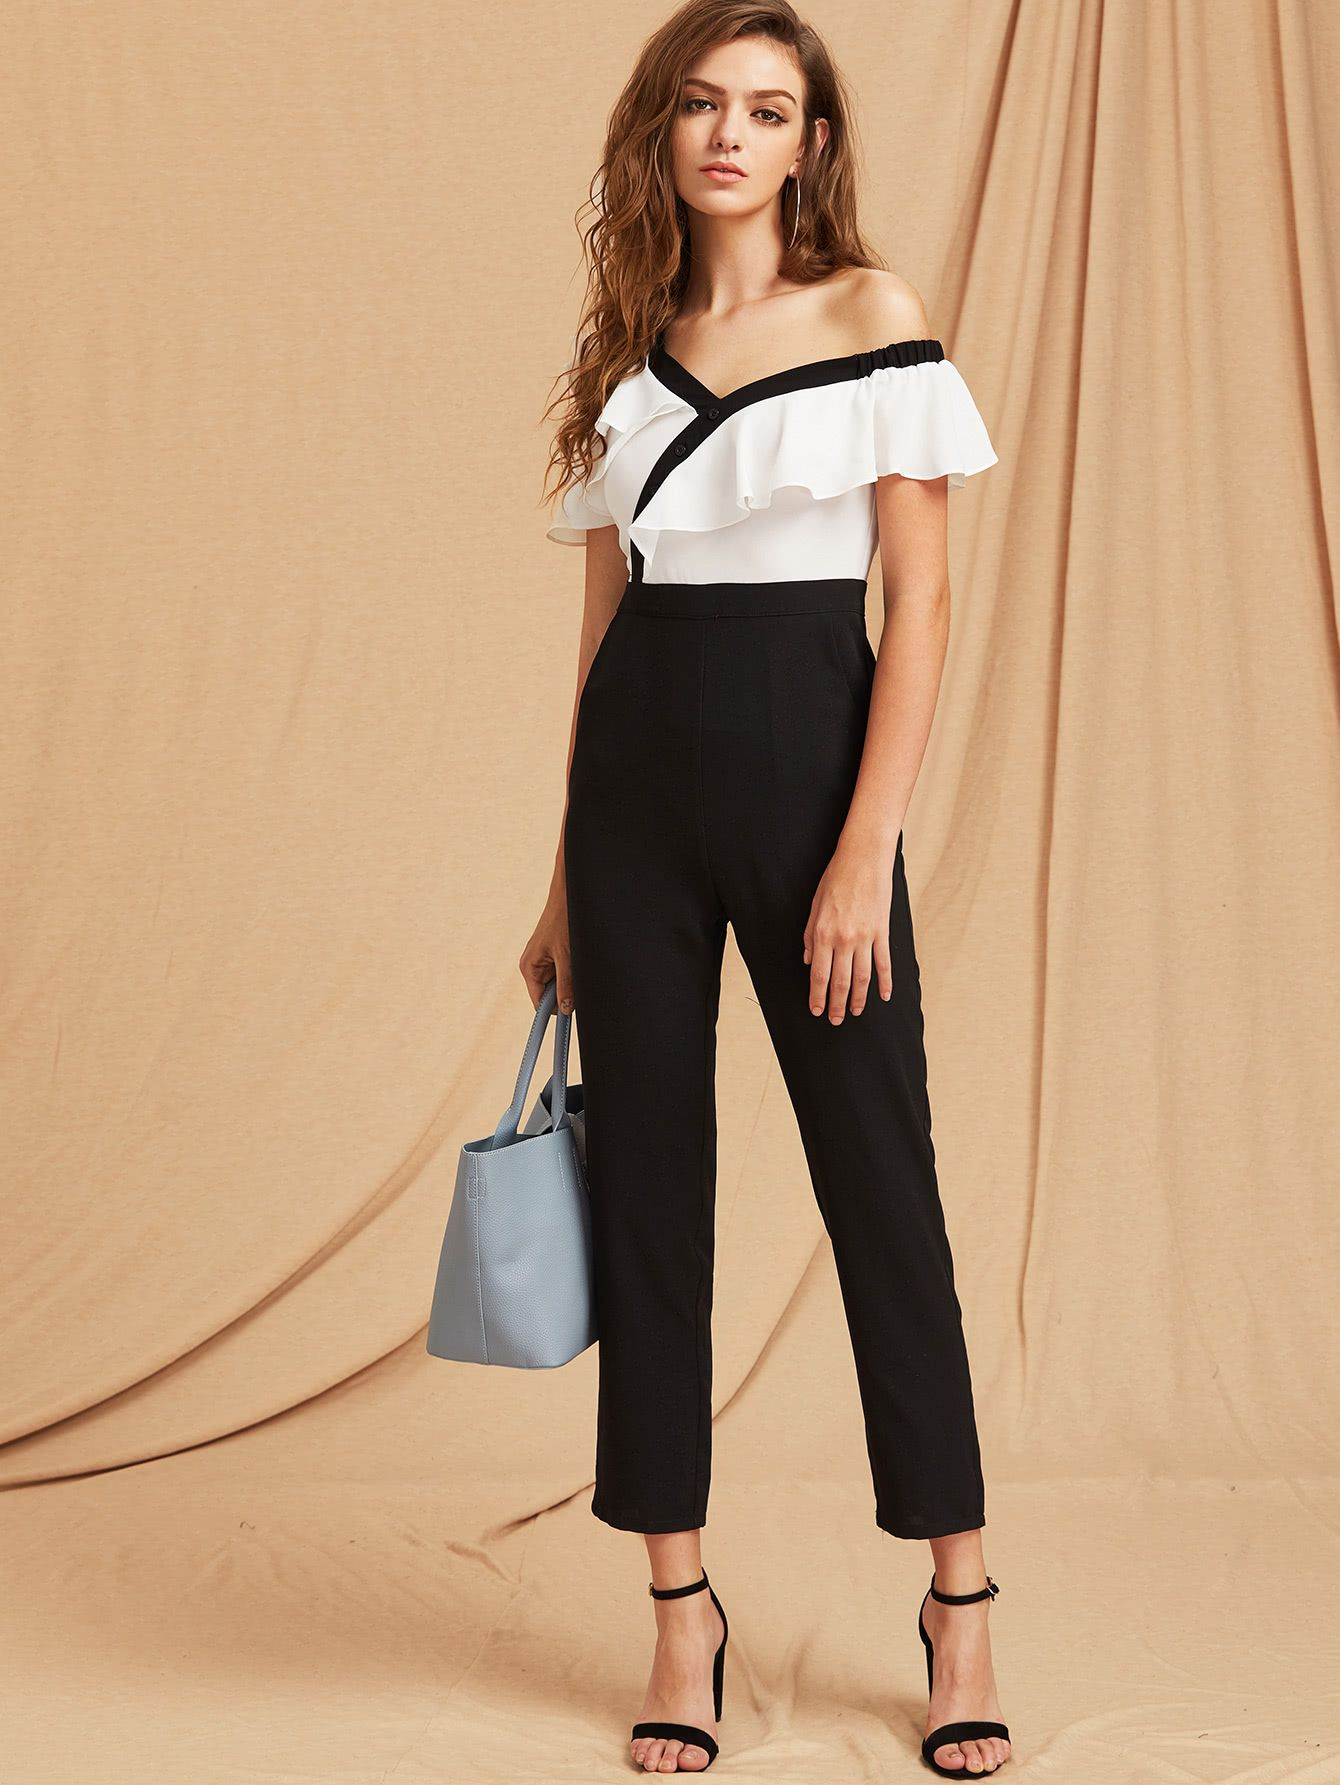 042d7830d77 Two Tone Flounce Asymmetric Shoulder Tailored Jumpsuit -SheIn(Sheinside)